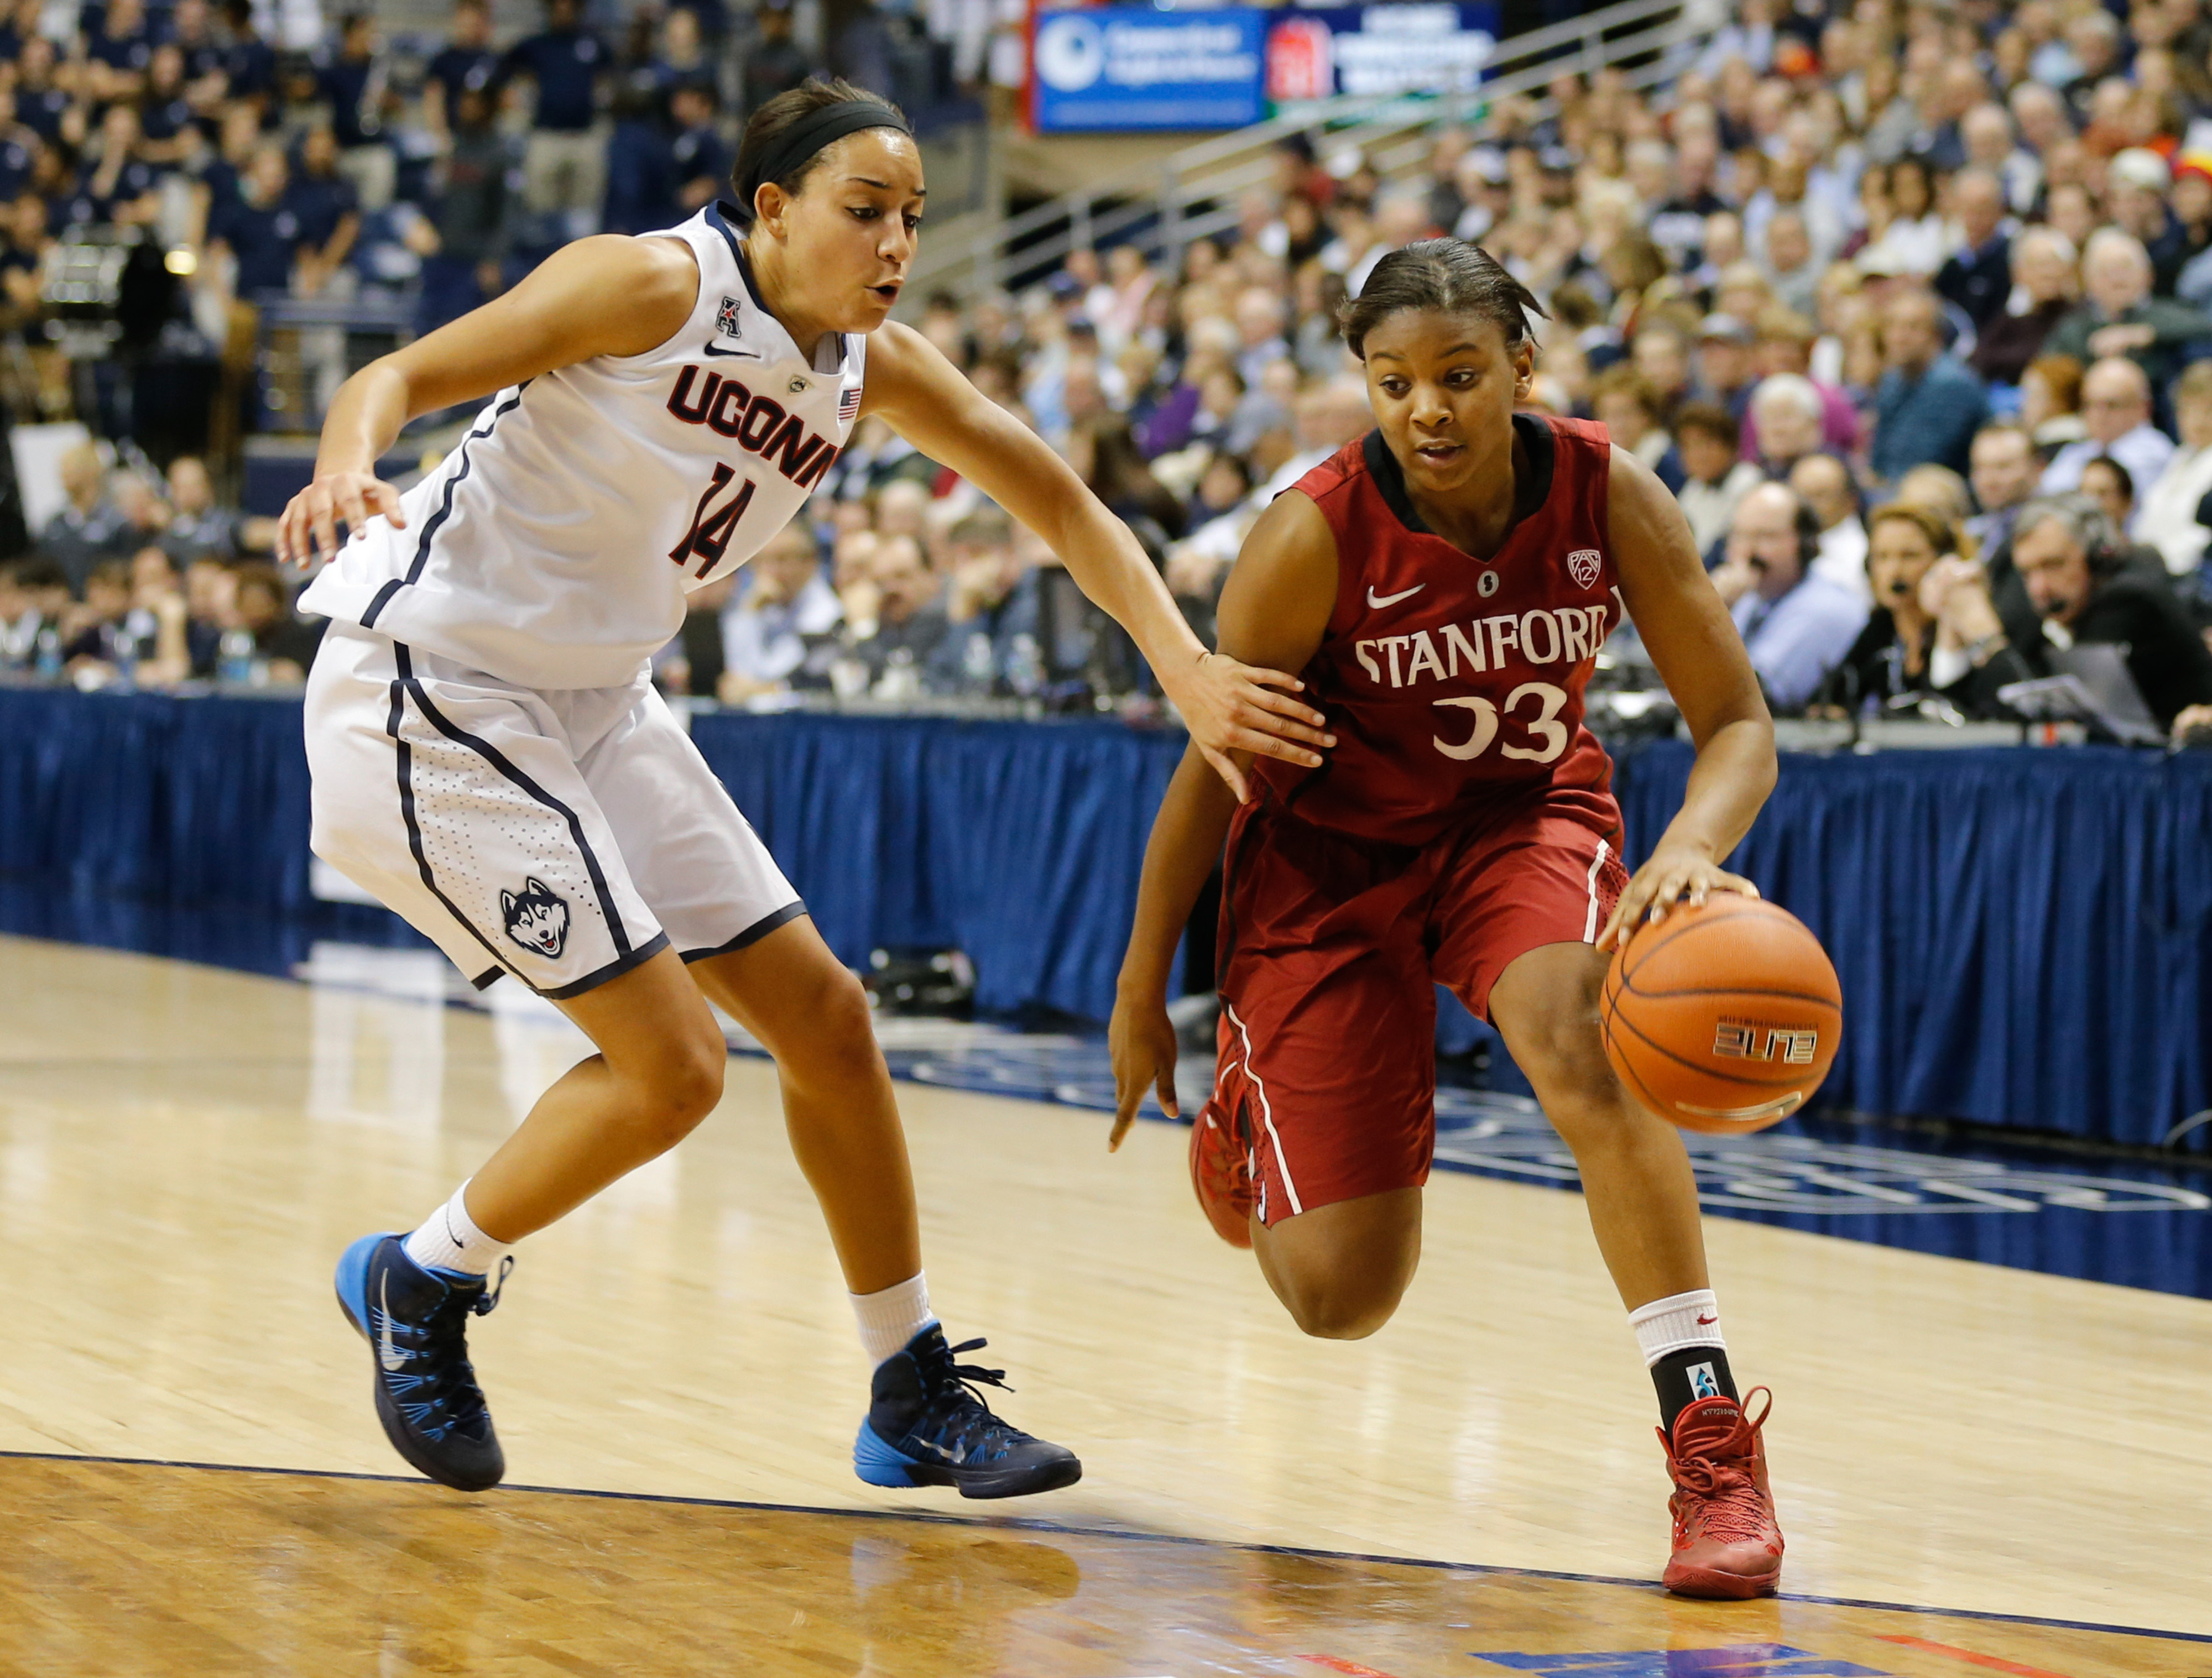 Both Bria Hartley and Amber Orrange had excellent games in a November meeting between UConn and Stanford.